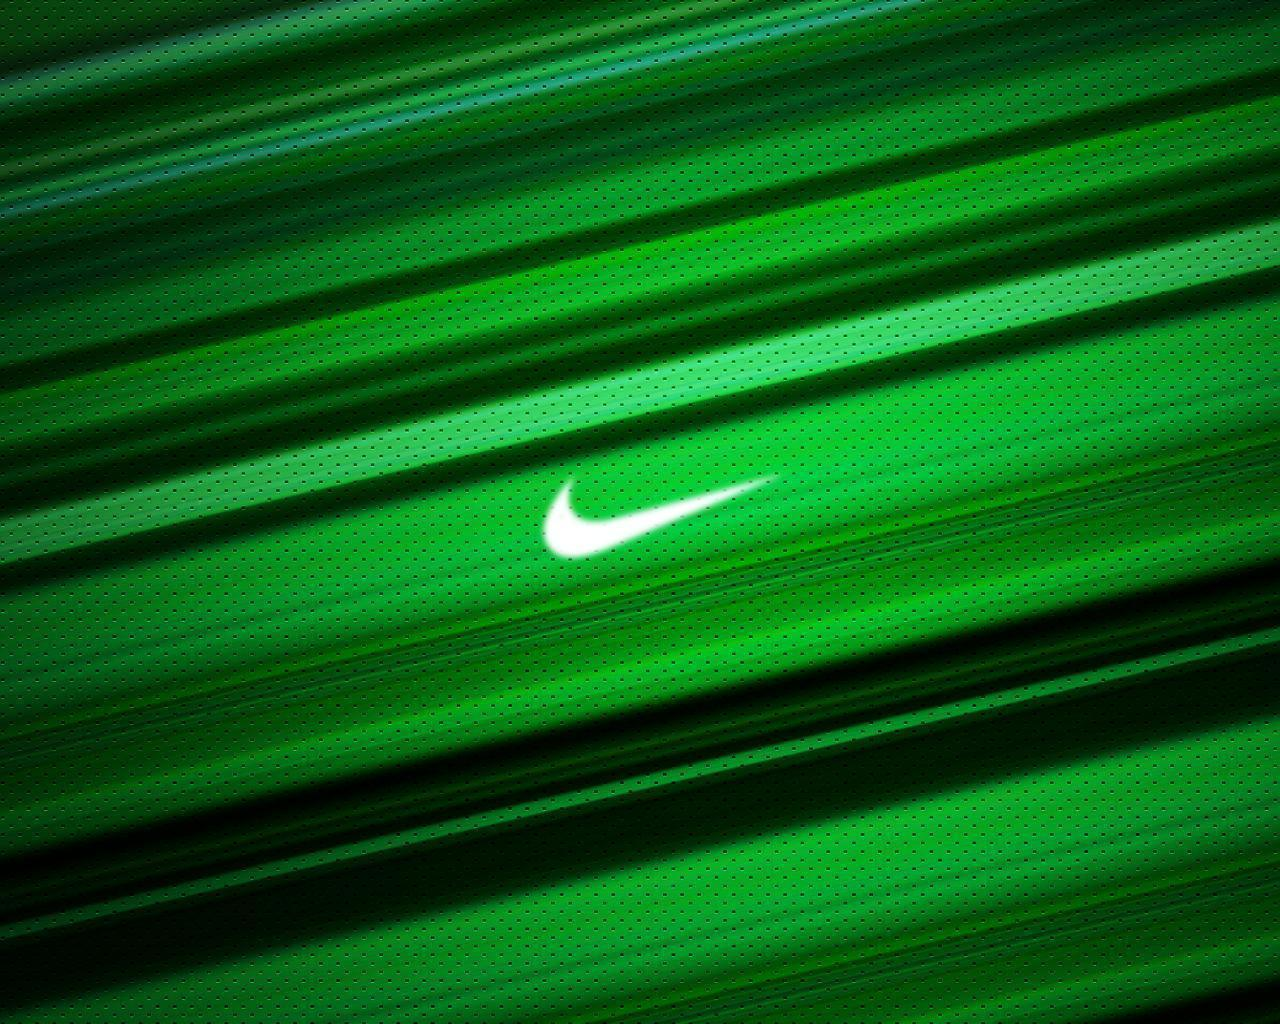 Cool Pics In Green